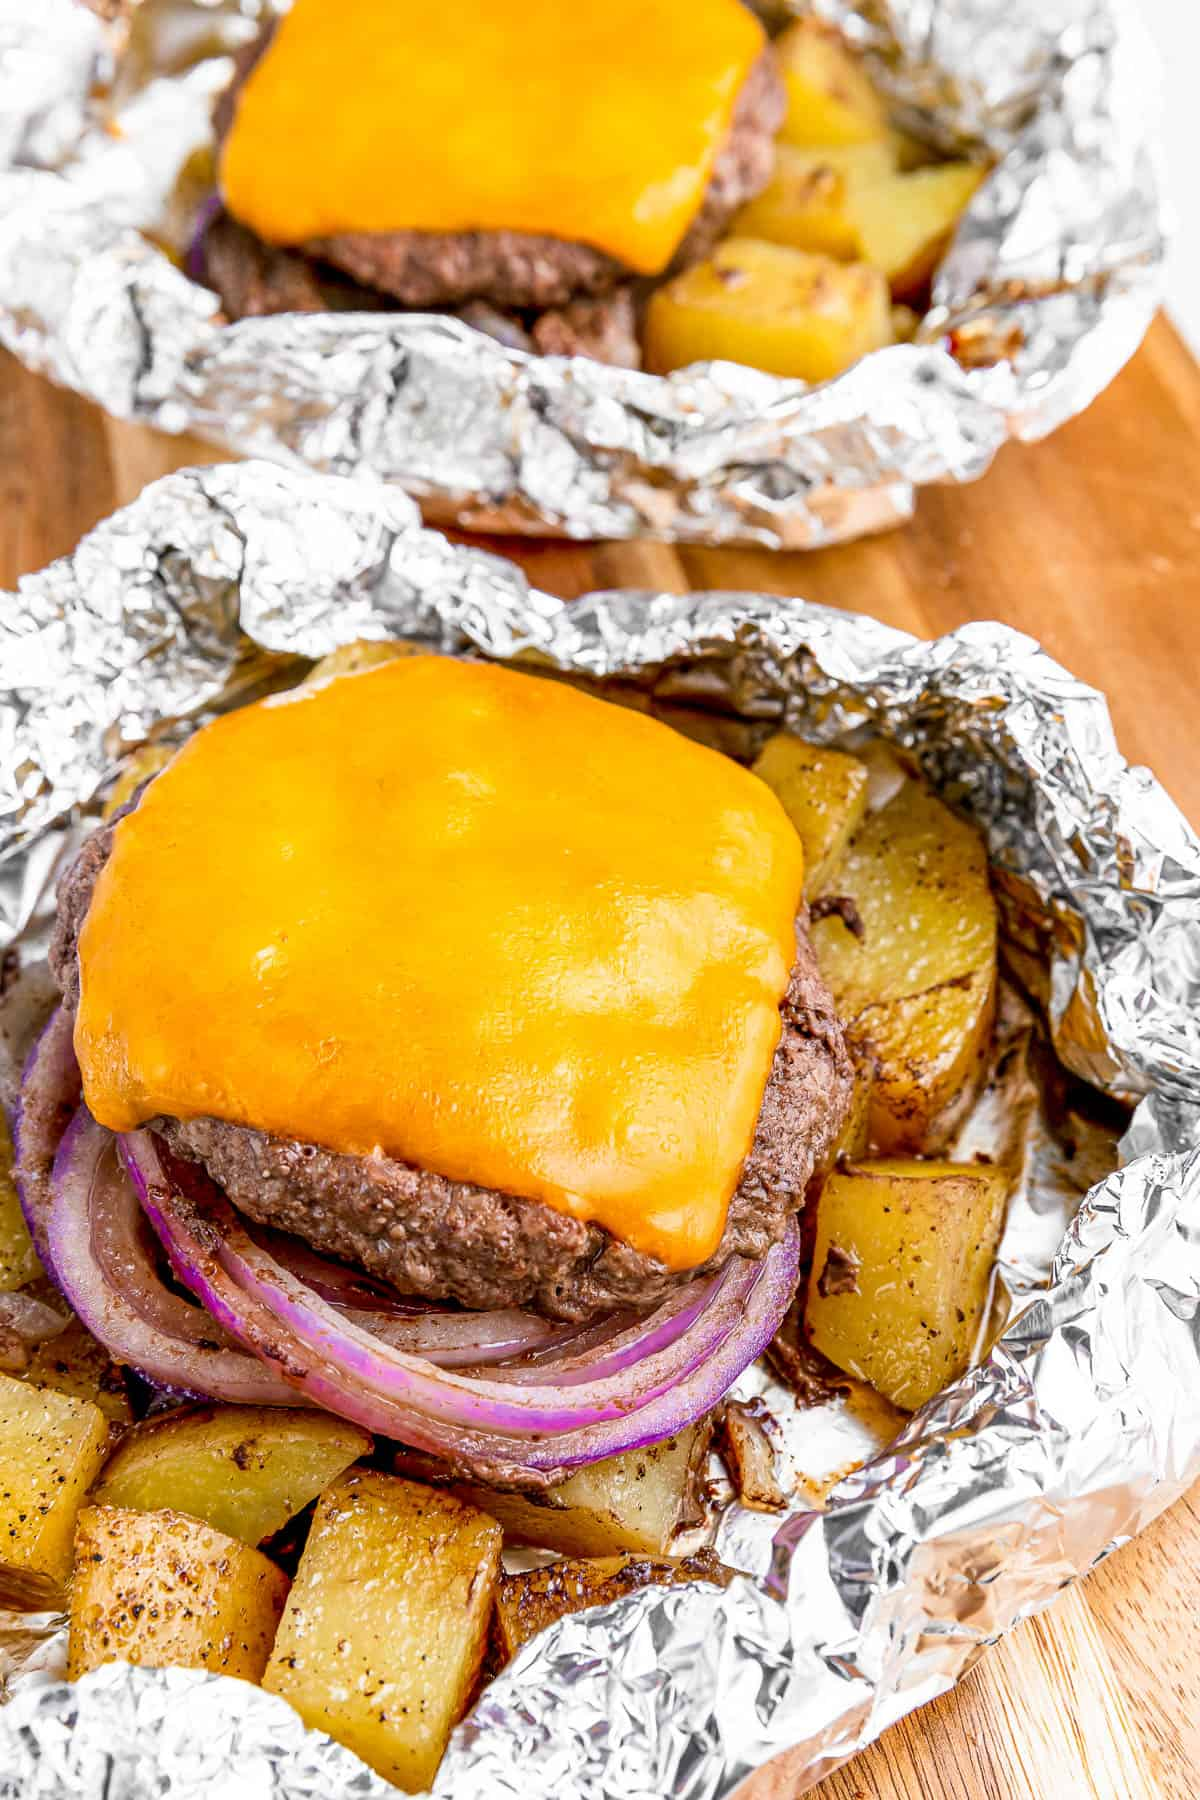 Cheeseburger in foil with melted cheese